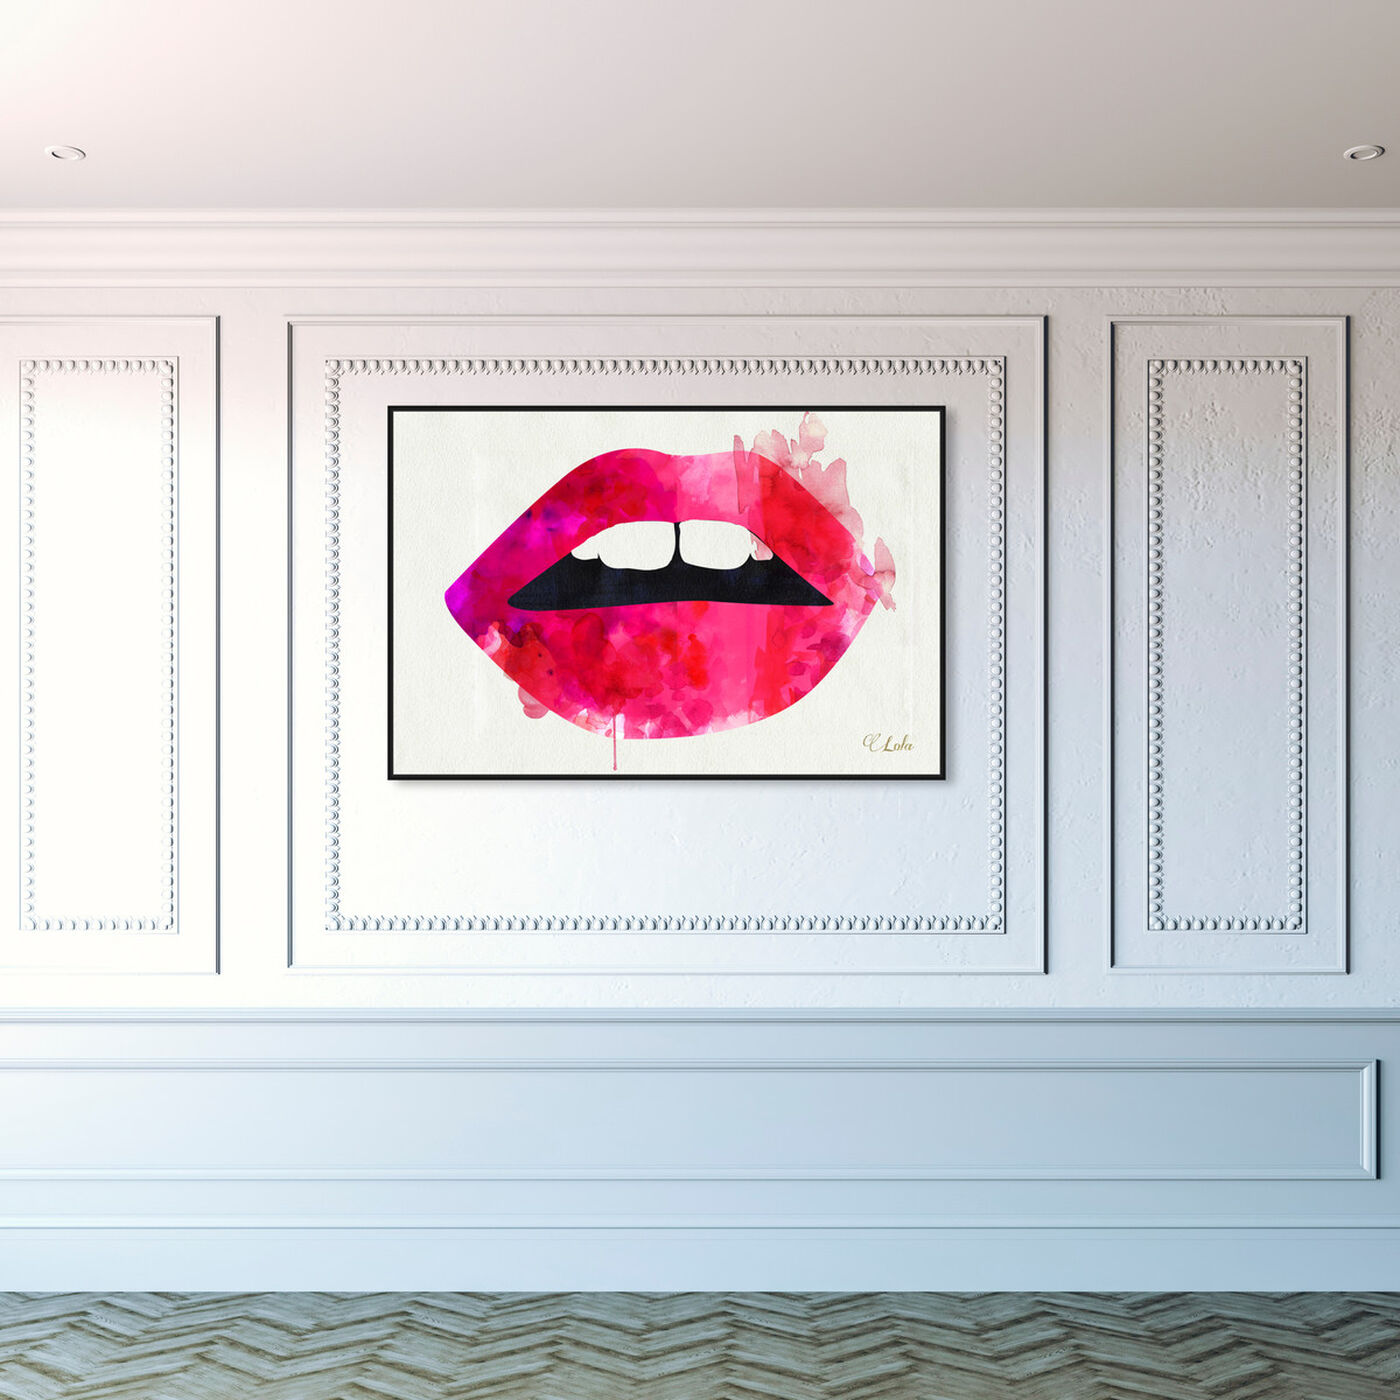 Hanging view of Lola's Lips featuring fashion and glam and lips art.